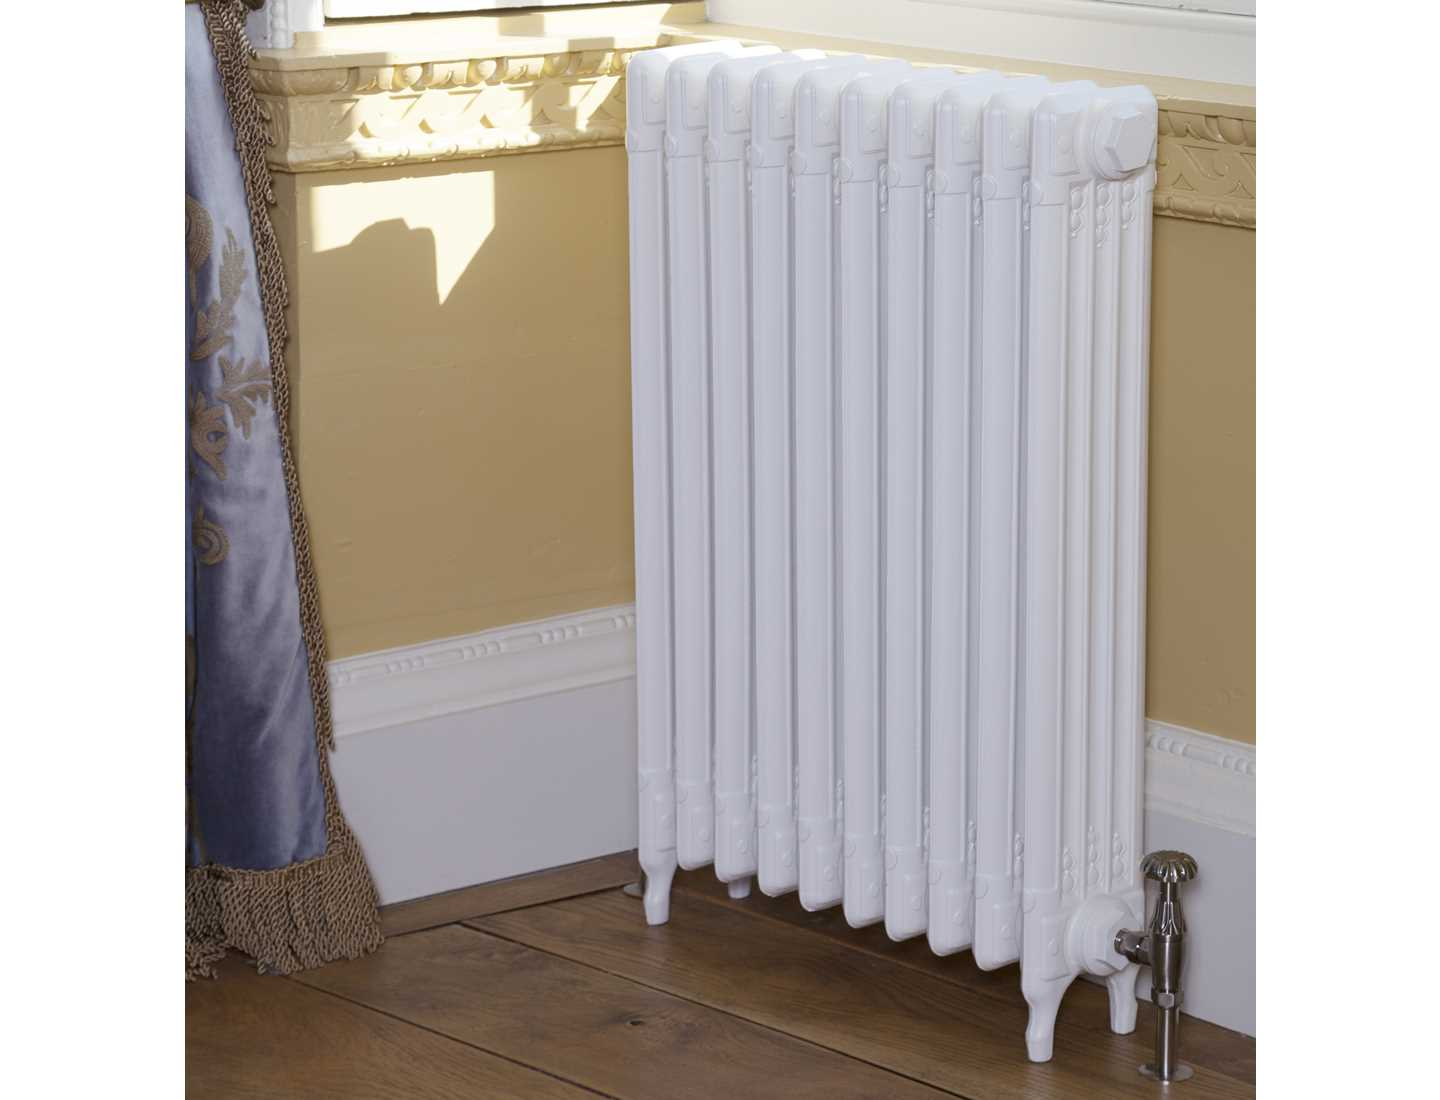 L'Art Deco cast radiator painted in parchment white with chrome valve